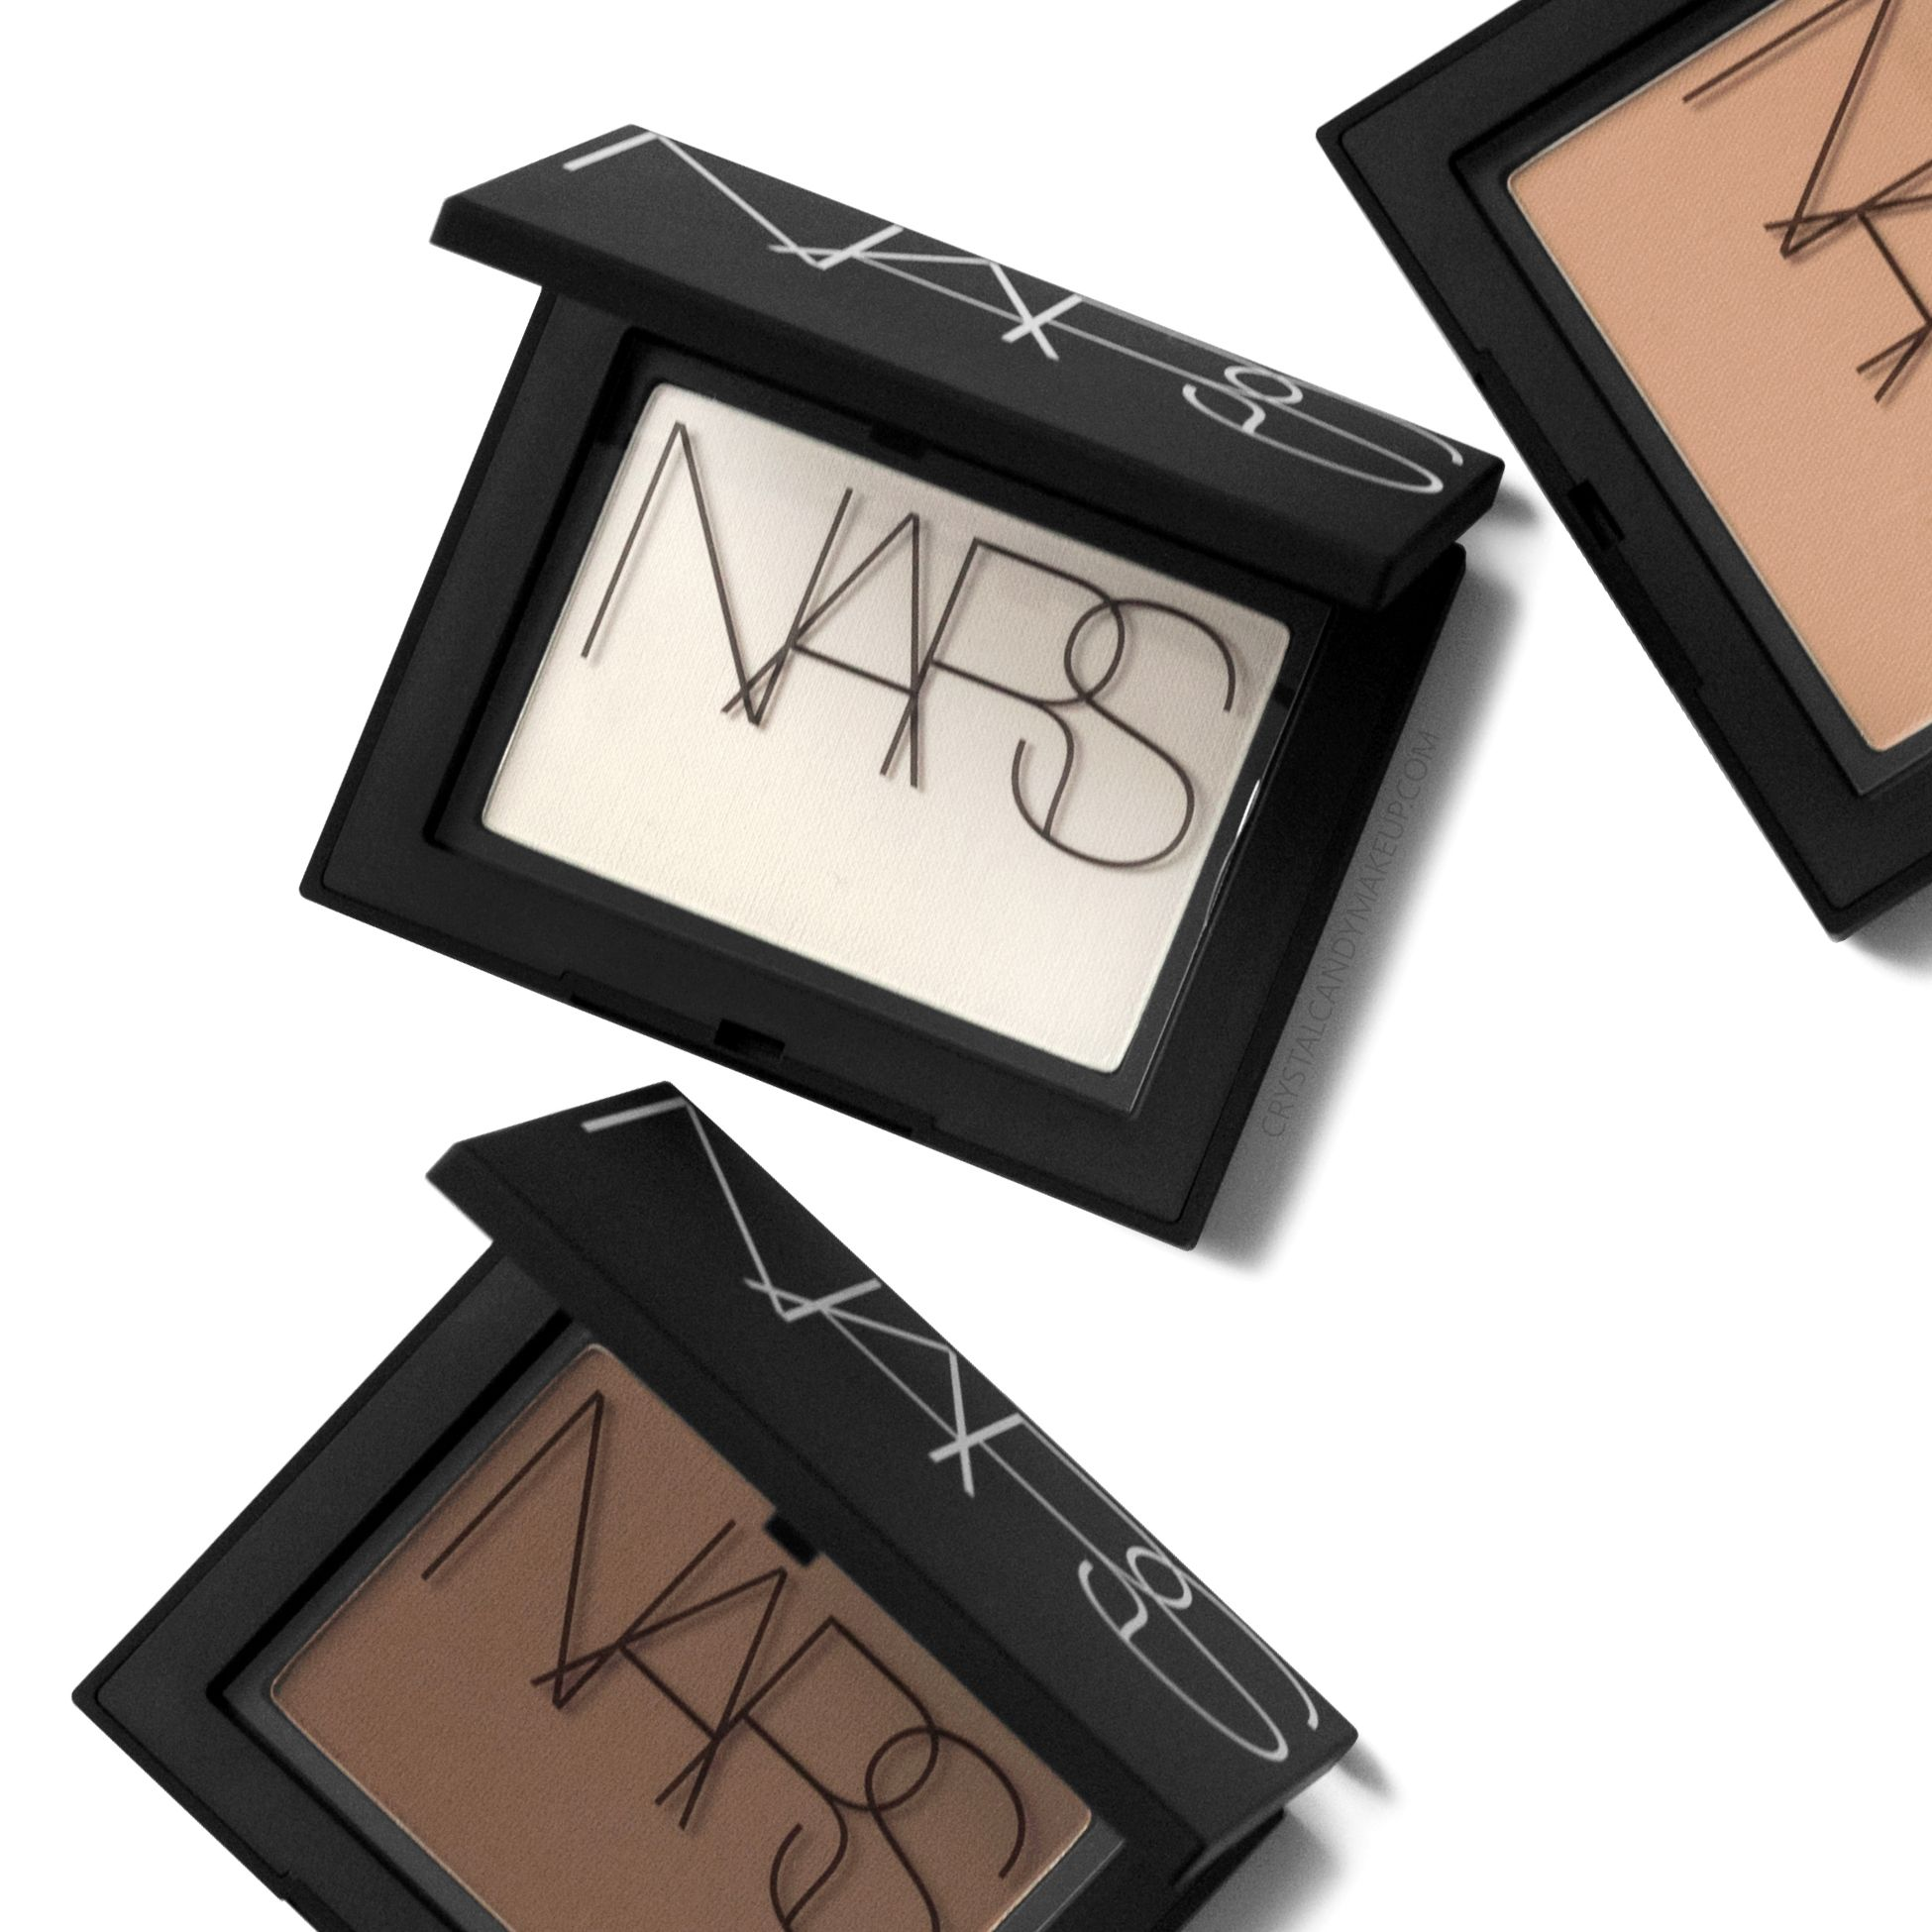 NARS' new Soft Velvet Pressed Powder Review and Swatches